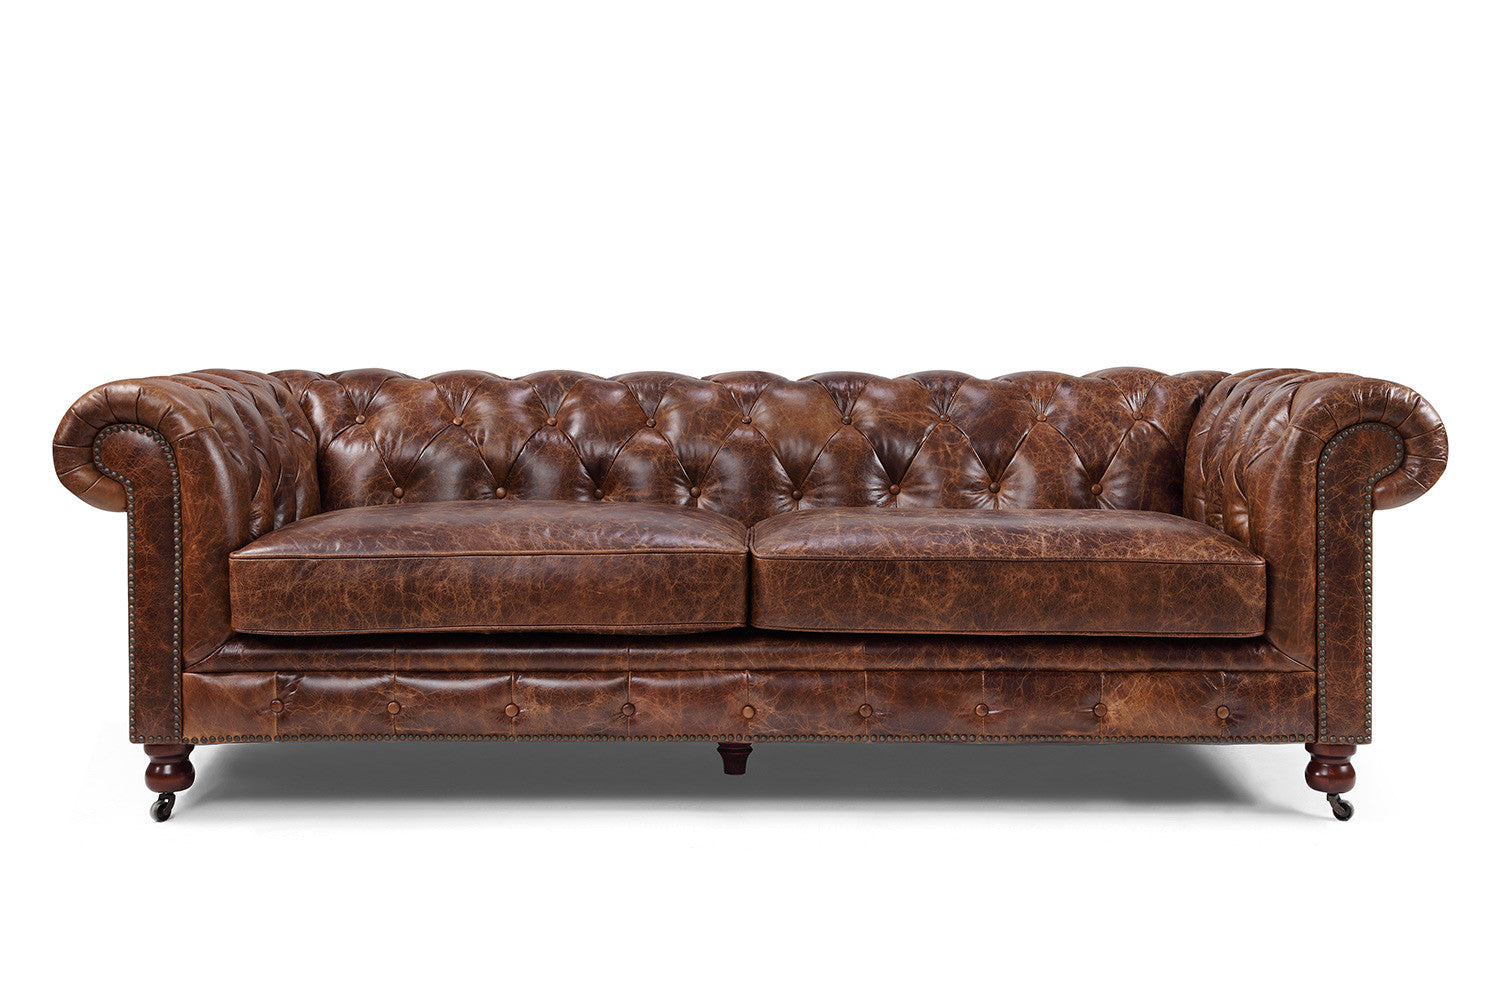 The kensington chesterfield tufted sofa rose and moore for Canapé chesterfield